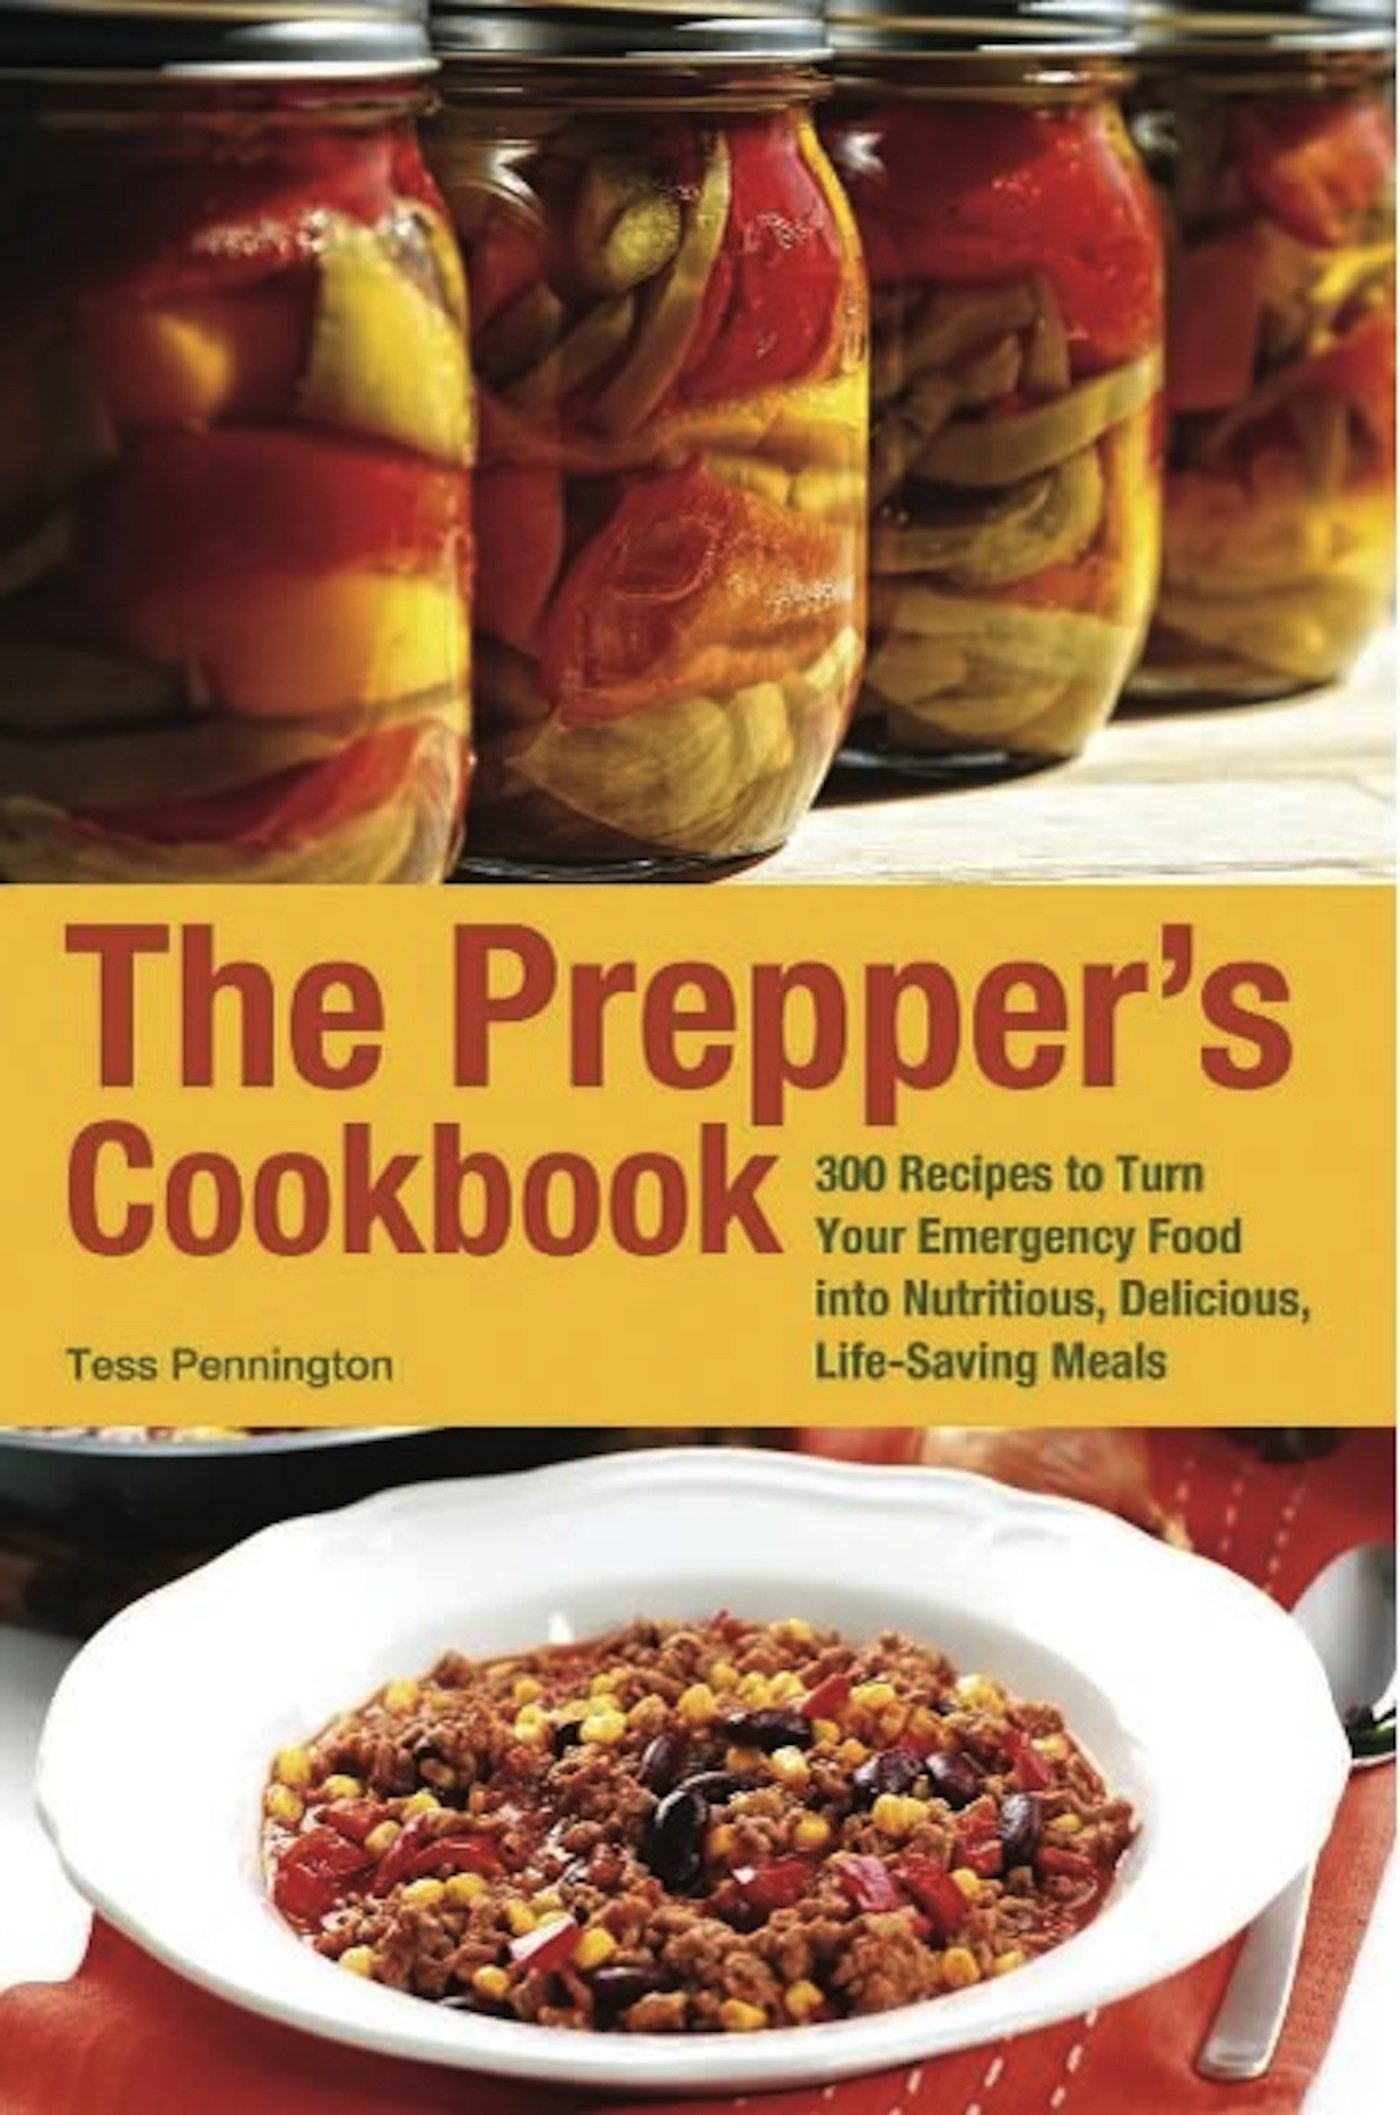 Download The Prepper's Cookbook: 300 Recipes to Turn Your Emergency Food into Nutritious, Delicious, Life-Saving Meals ebook